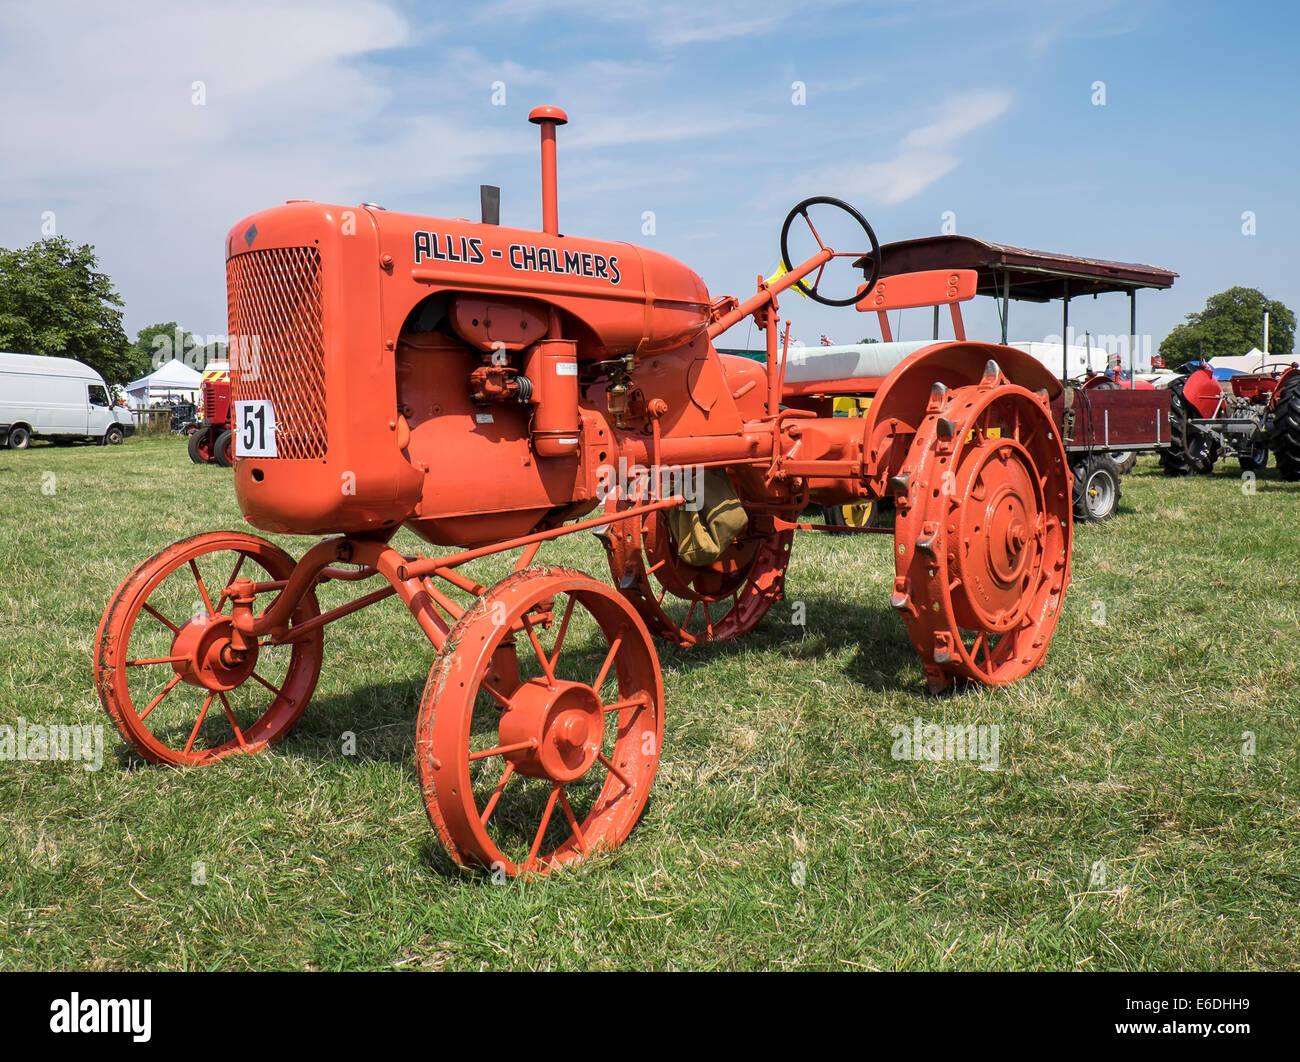 veteran-1942-allis-chalmers-type-b-tractor-at-show-ground-for-stow-E6DHH9.jpg